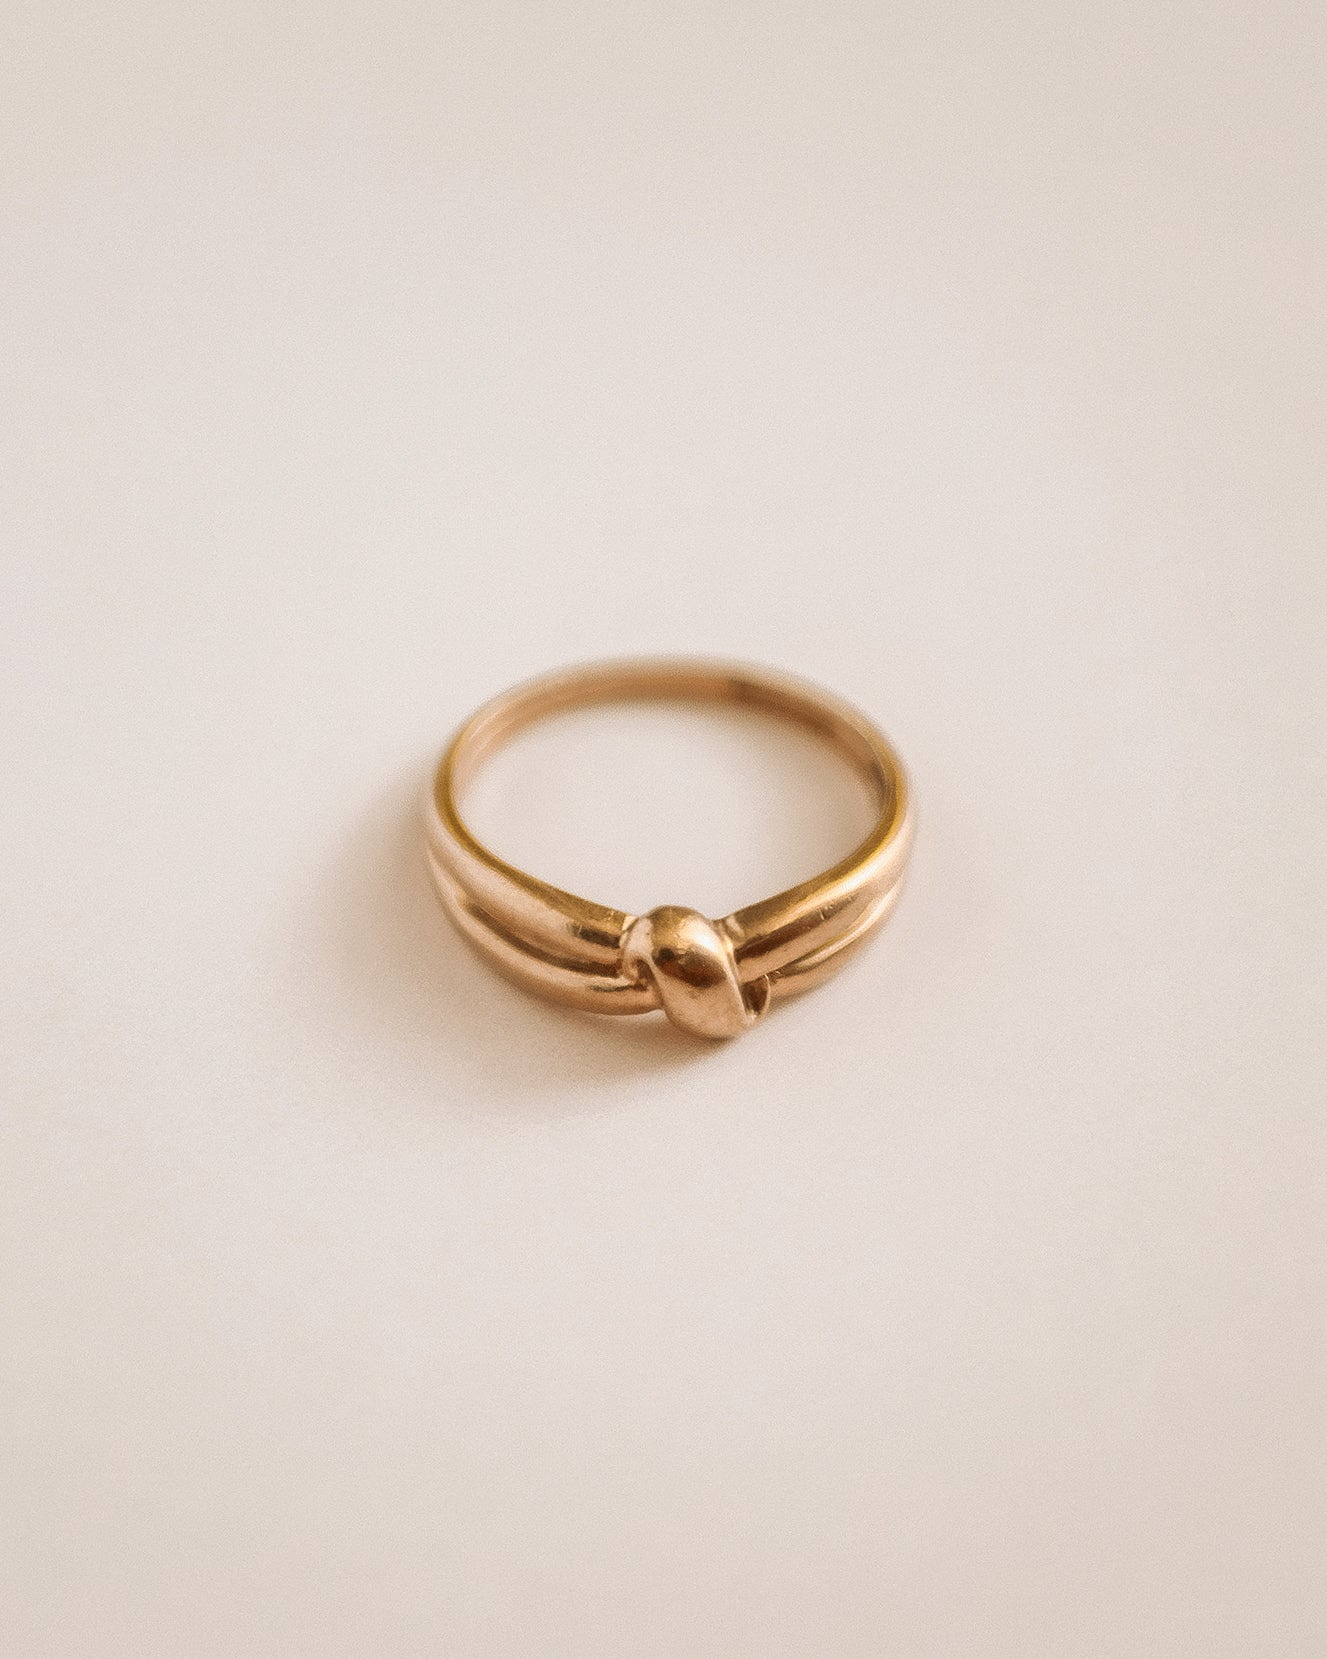 Maude 9ct Gold Knot Band Ring